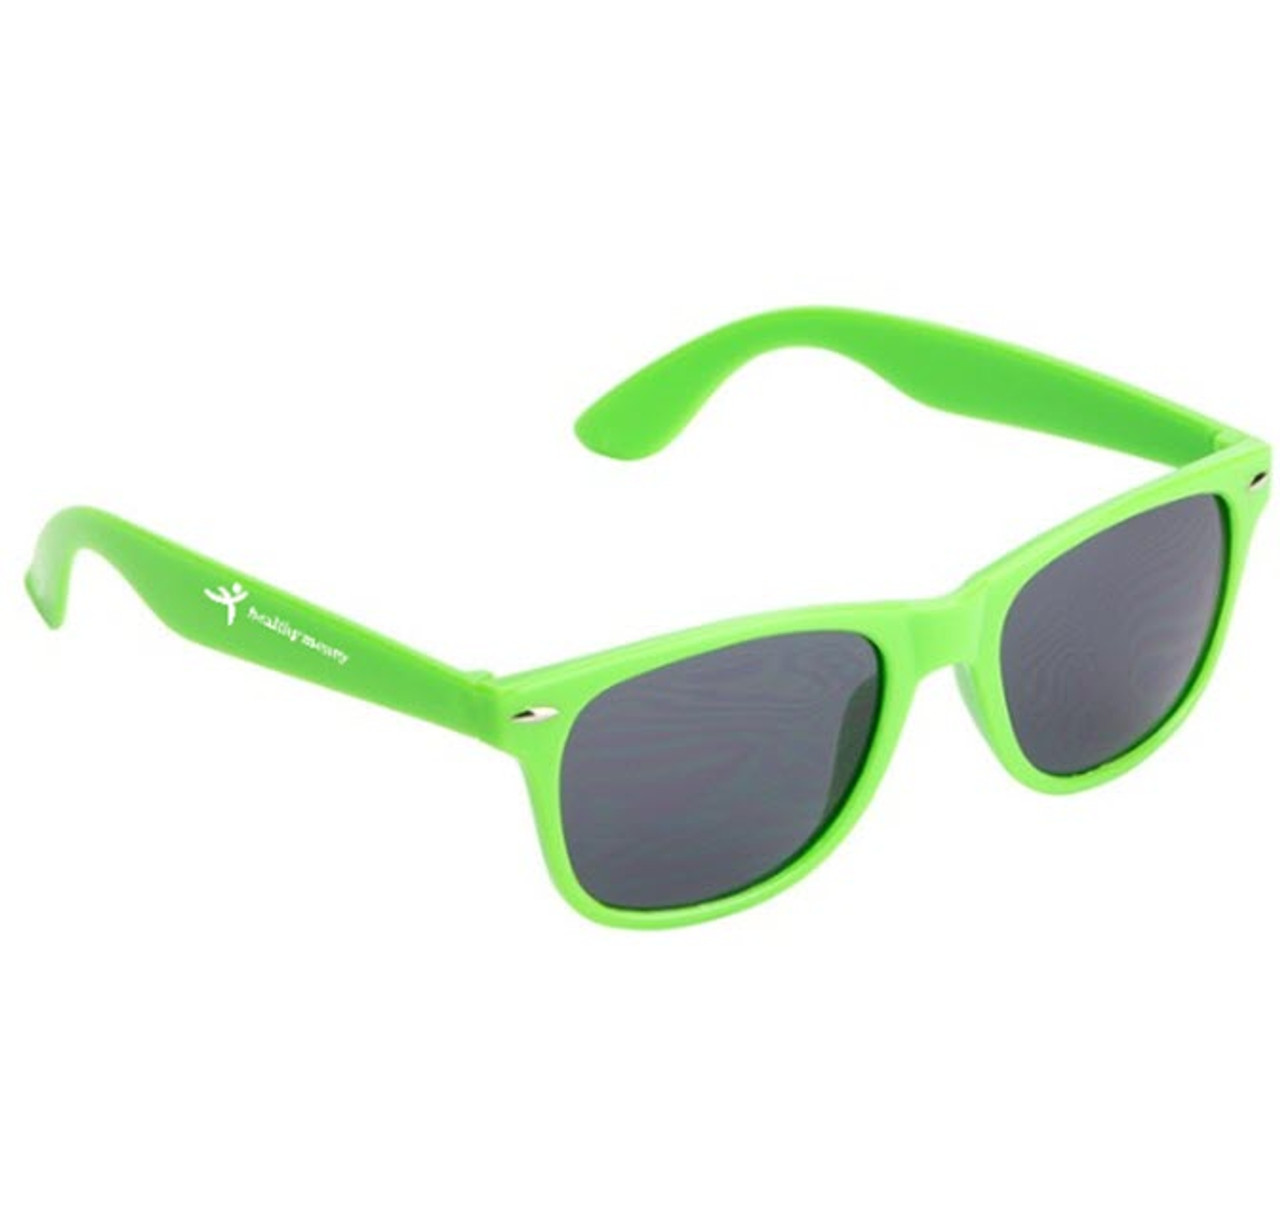 UV400 Sunglasses